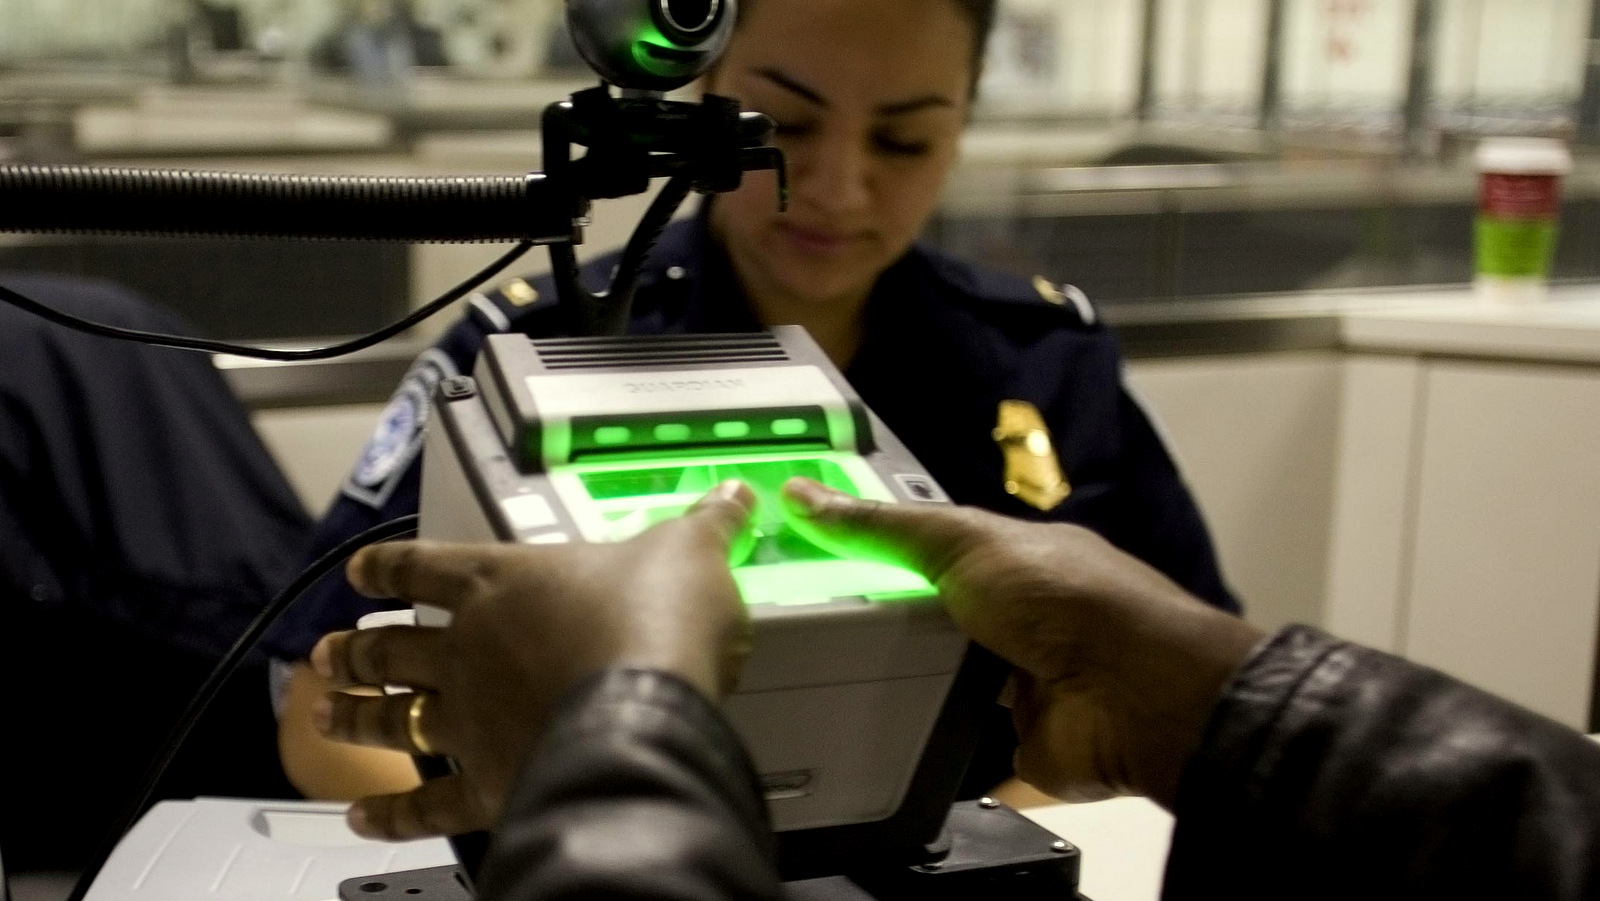 A traveler arriving at Washington Dulles International Airport Monday uses the new US-VISIT mechanism that records all 10 fingerprint images. Photo: Gerald Nino/CPB